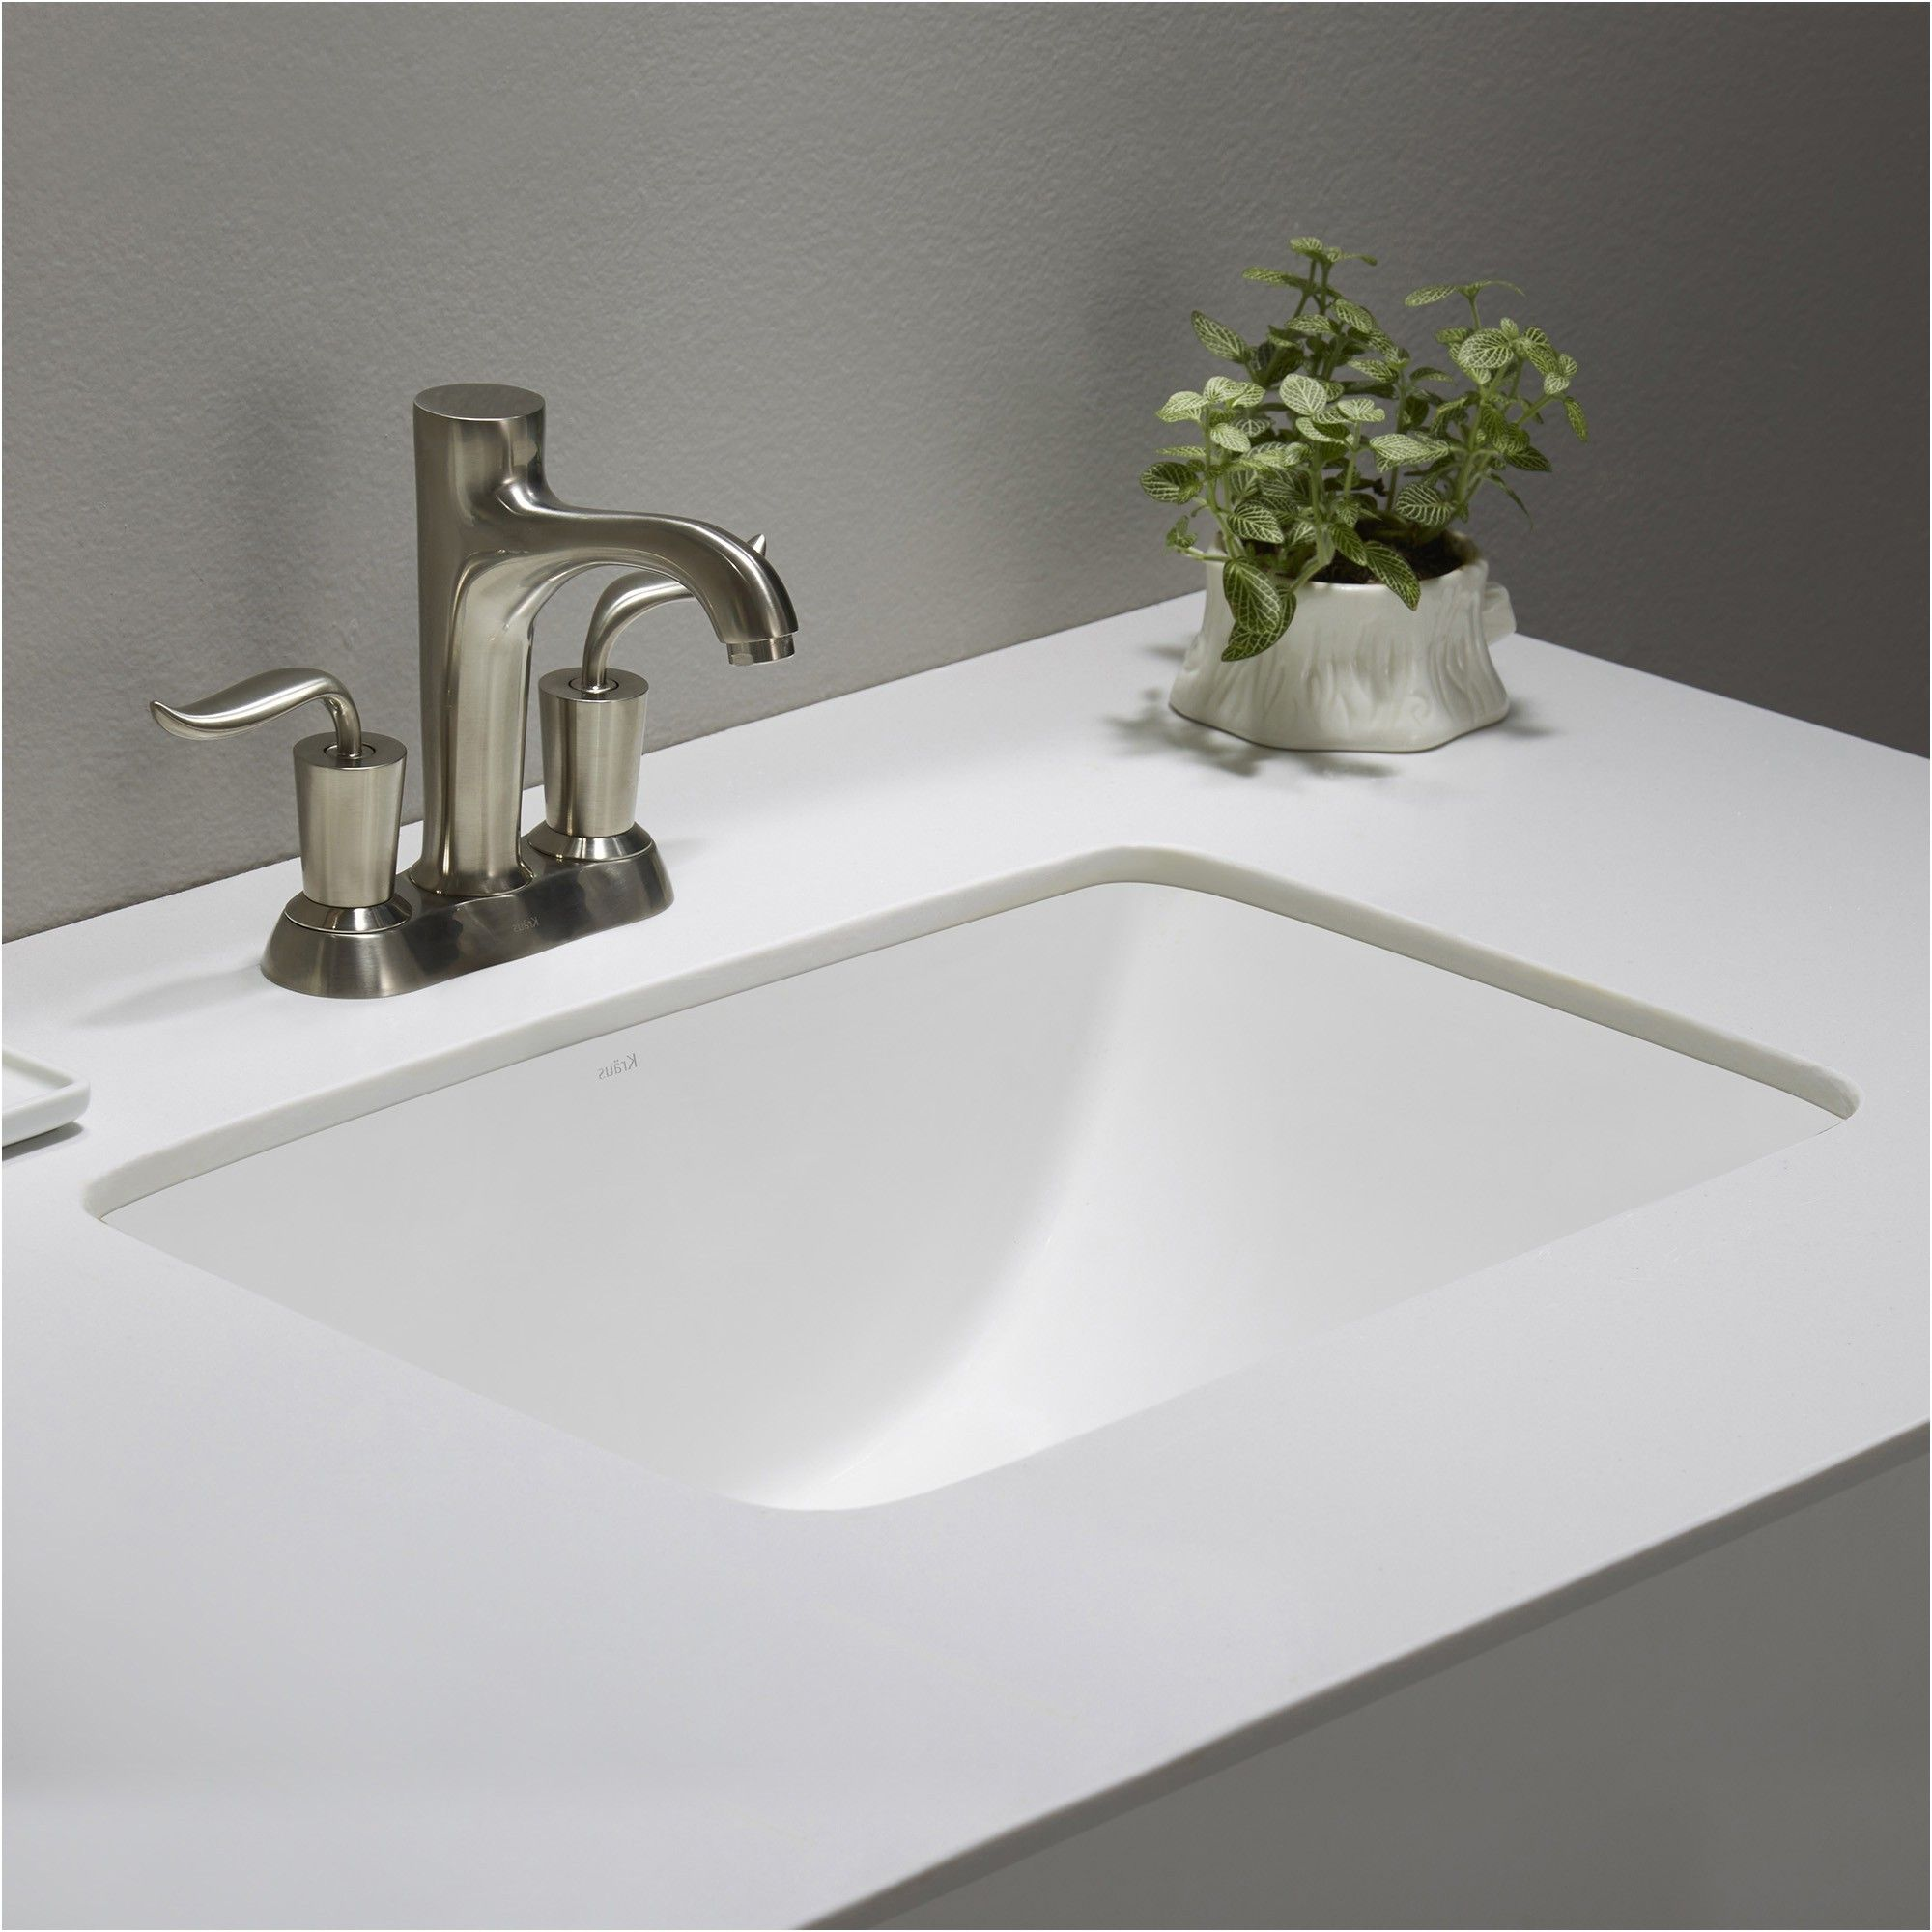 Ceramic Sink Kraususa From Small Undermount Sinks Bathroom